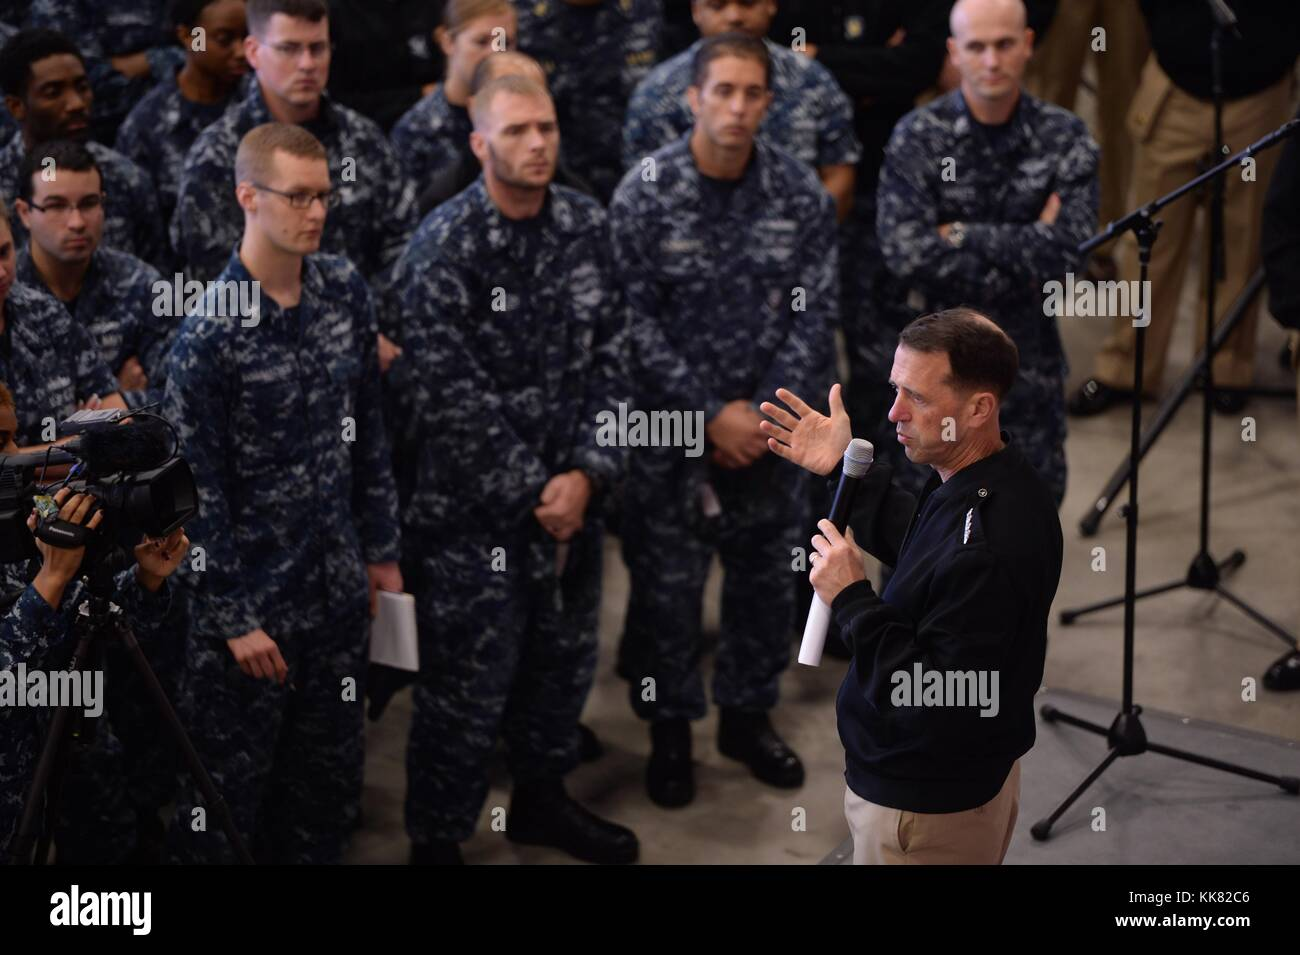 Chief of Naval Operations CNO Admiral John Richardson provides remarks during an all-hands call at Naval Support Stock Photo